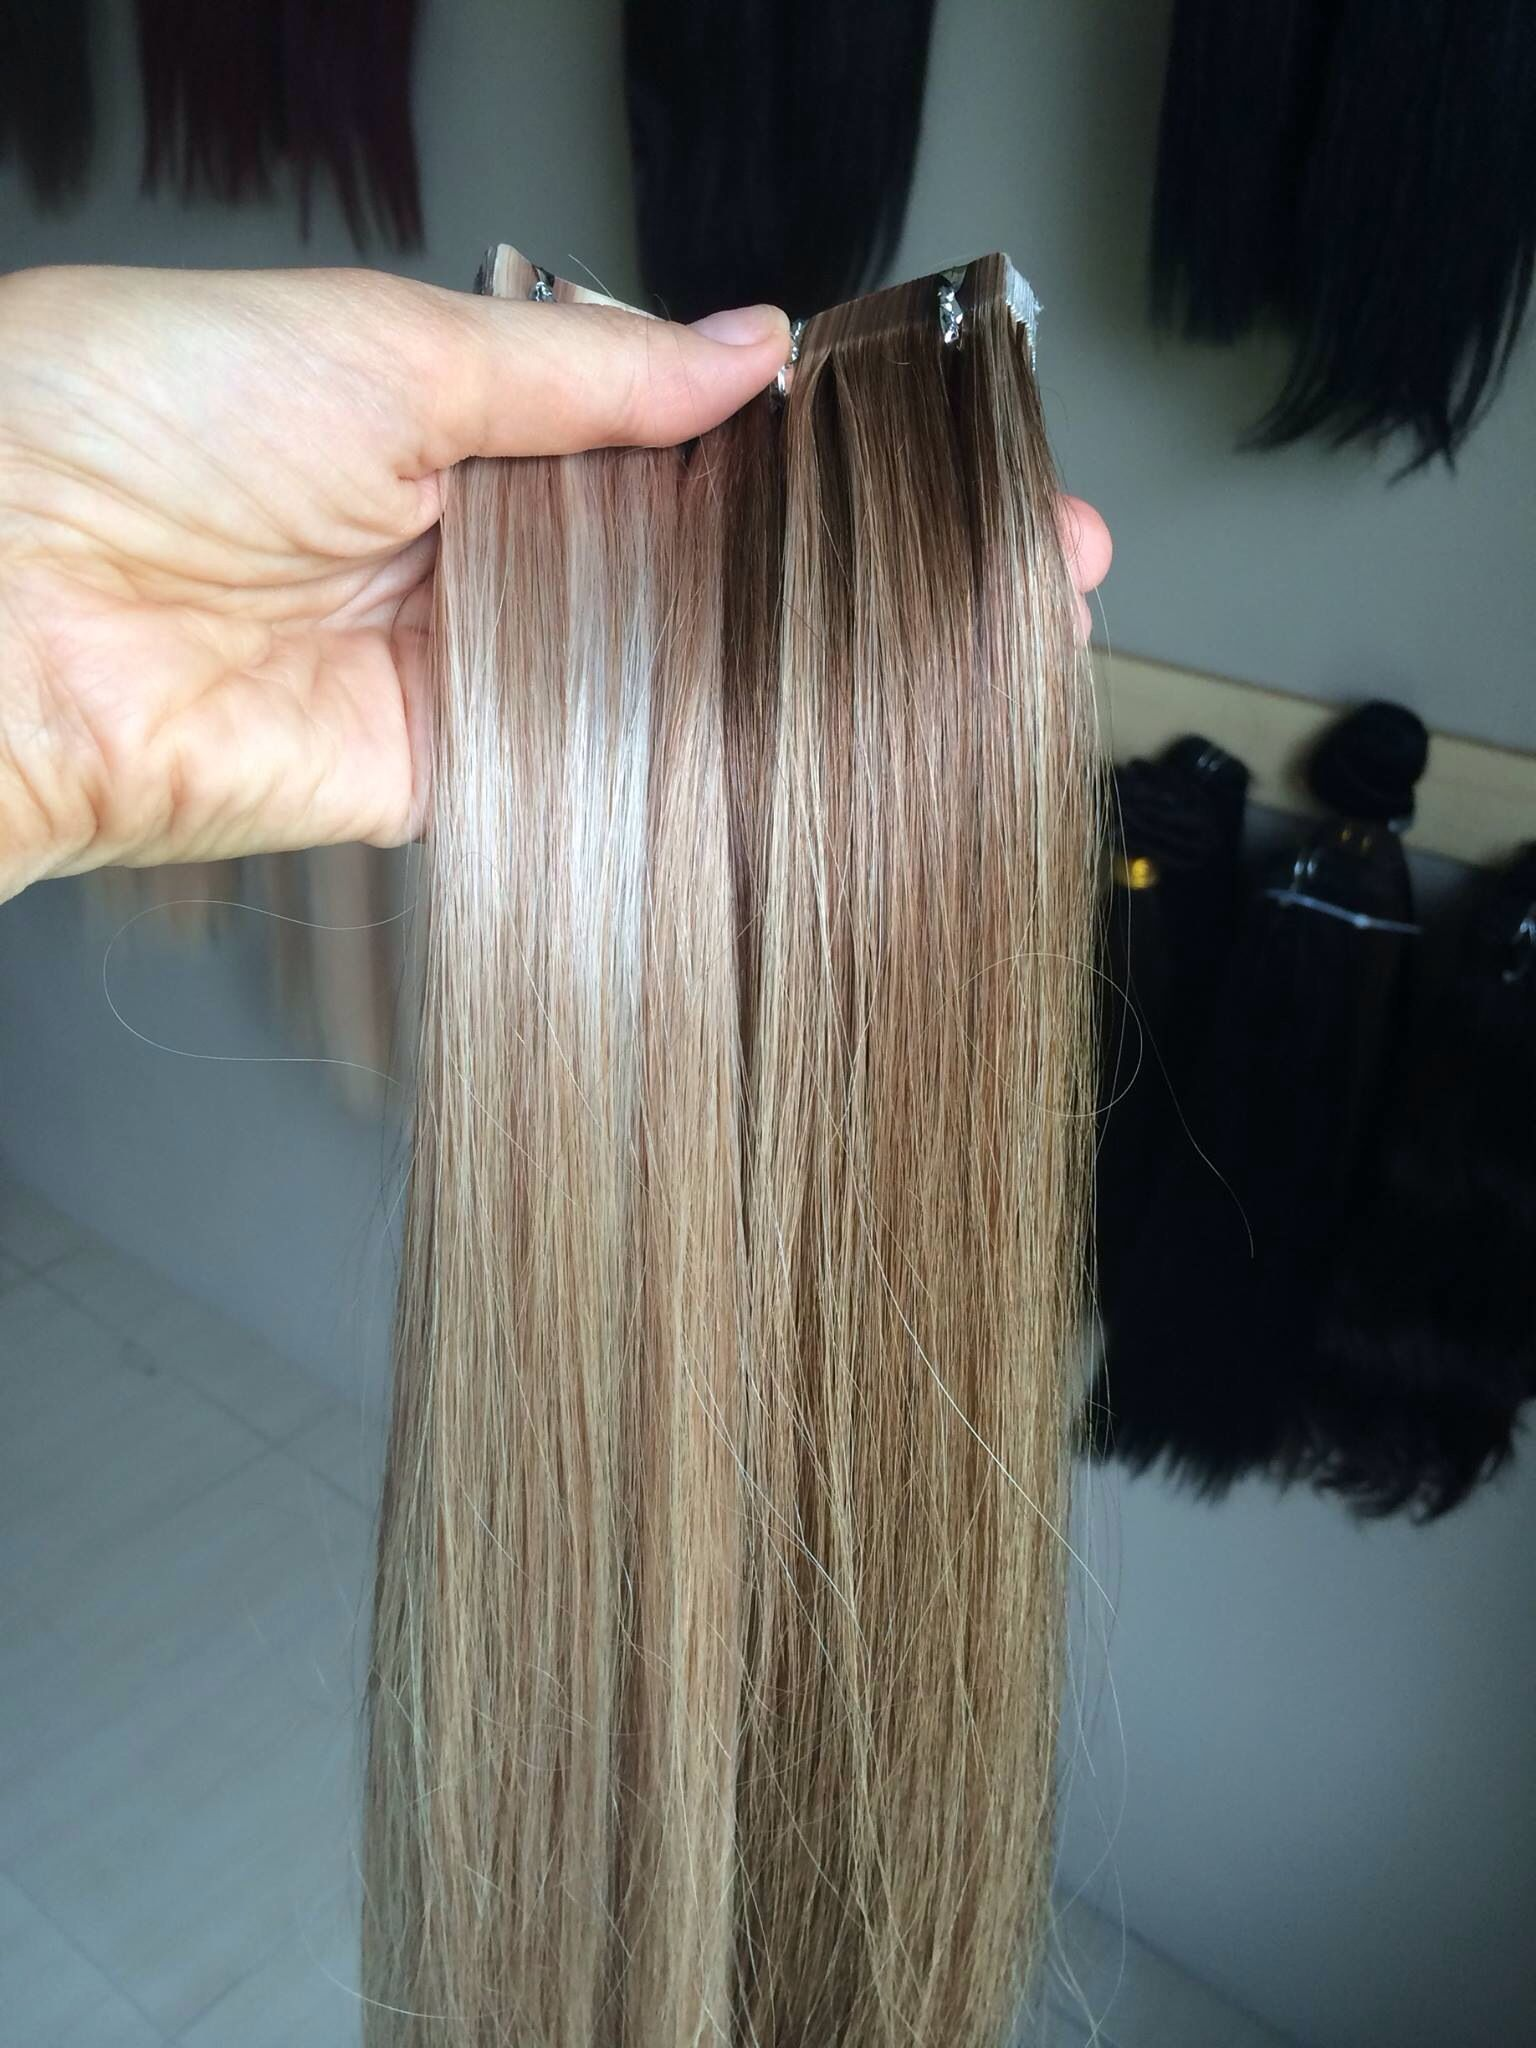 Perfect Seamless Tape Strands Of Love Hair Extensions Strands Of